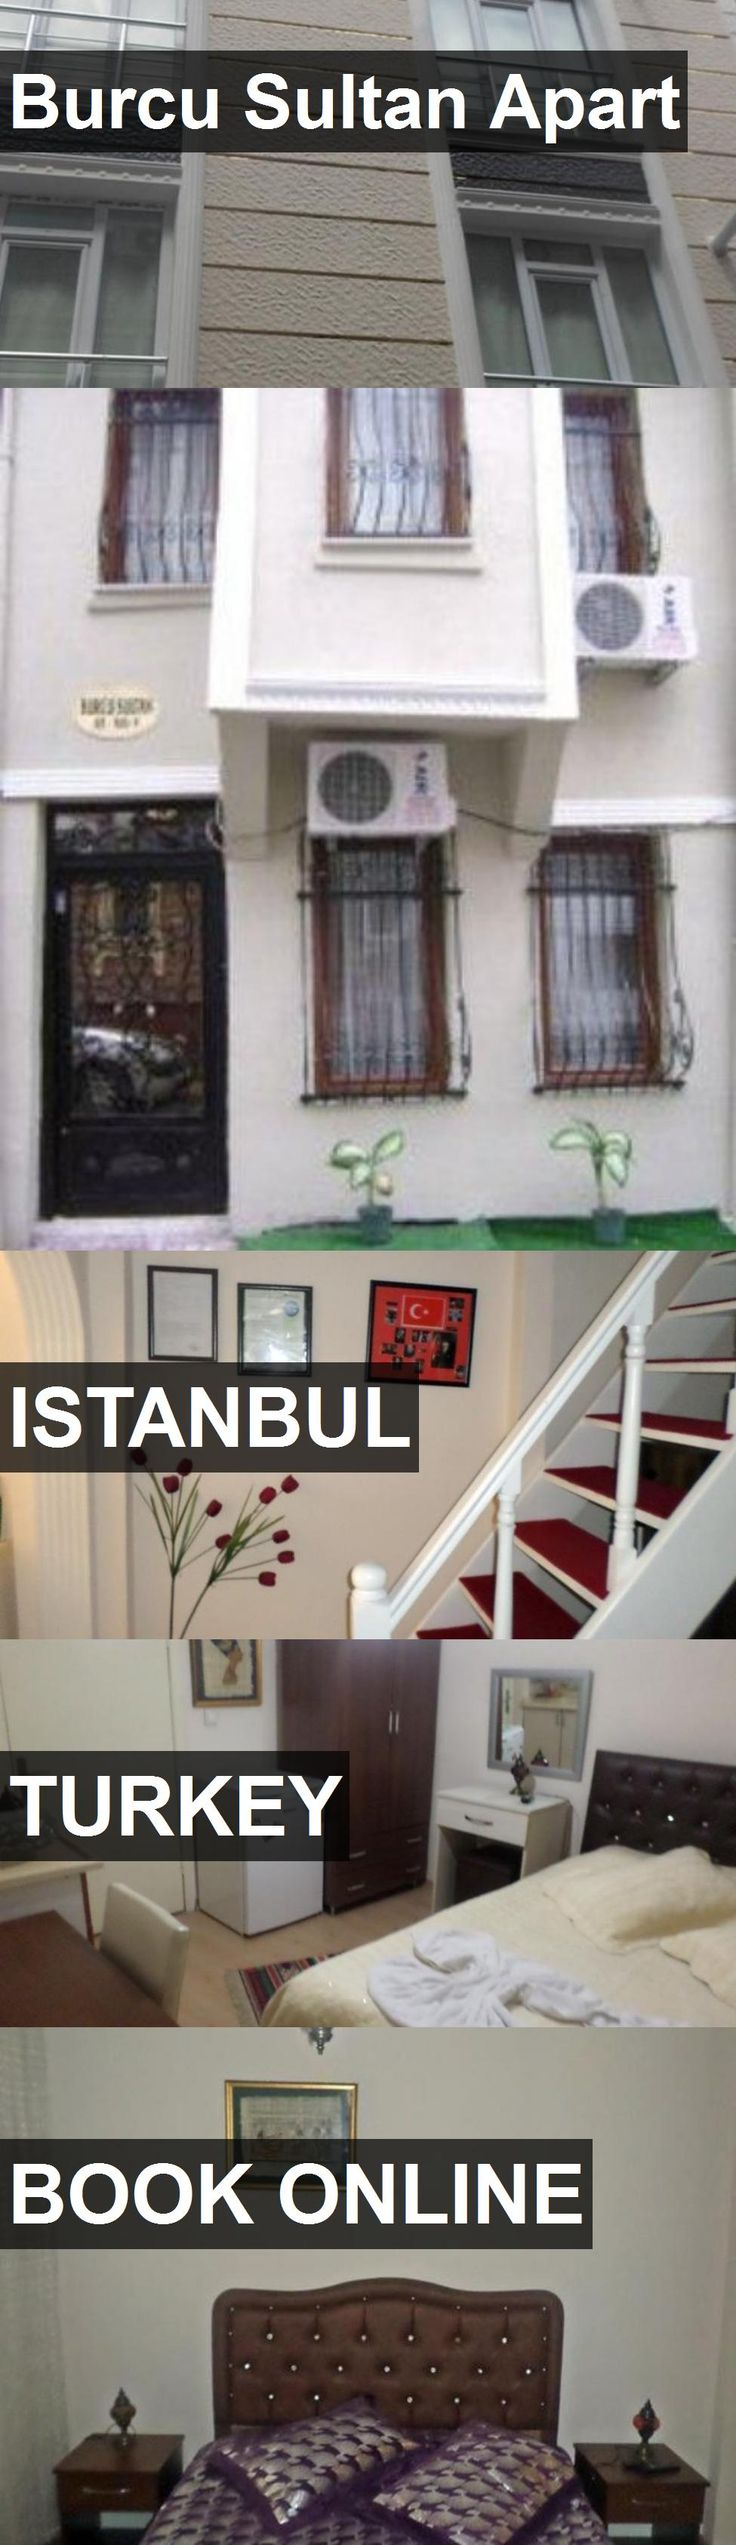 Hotel Burcu Sultan Apart in Istanbul, Turkey. For more information, photos, reviews and best prices please follow the link. #Turkey #Istanbul #hotel #travel #vacation